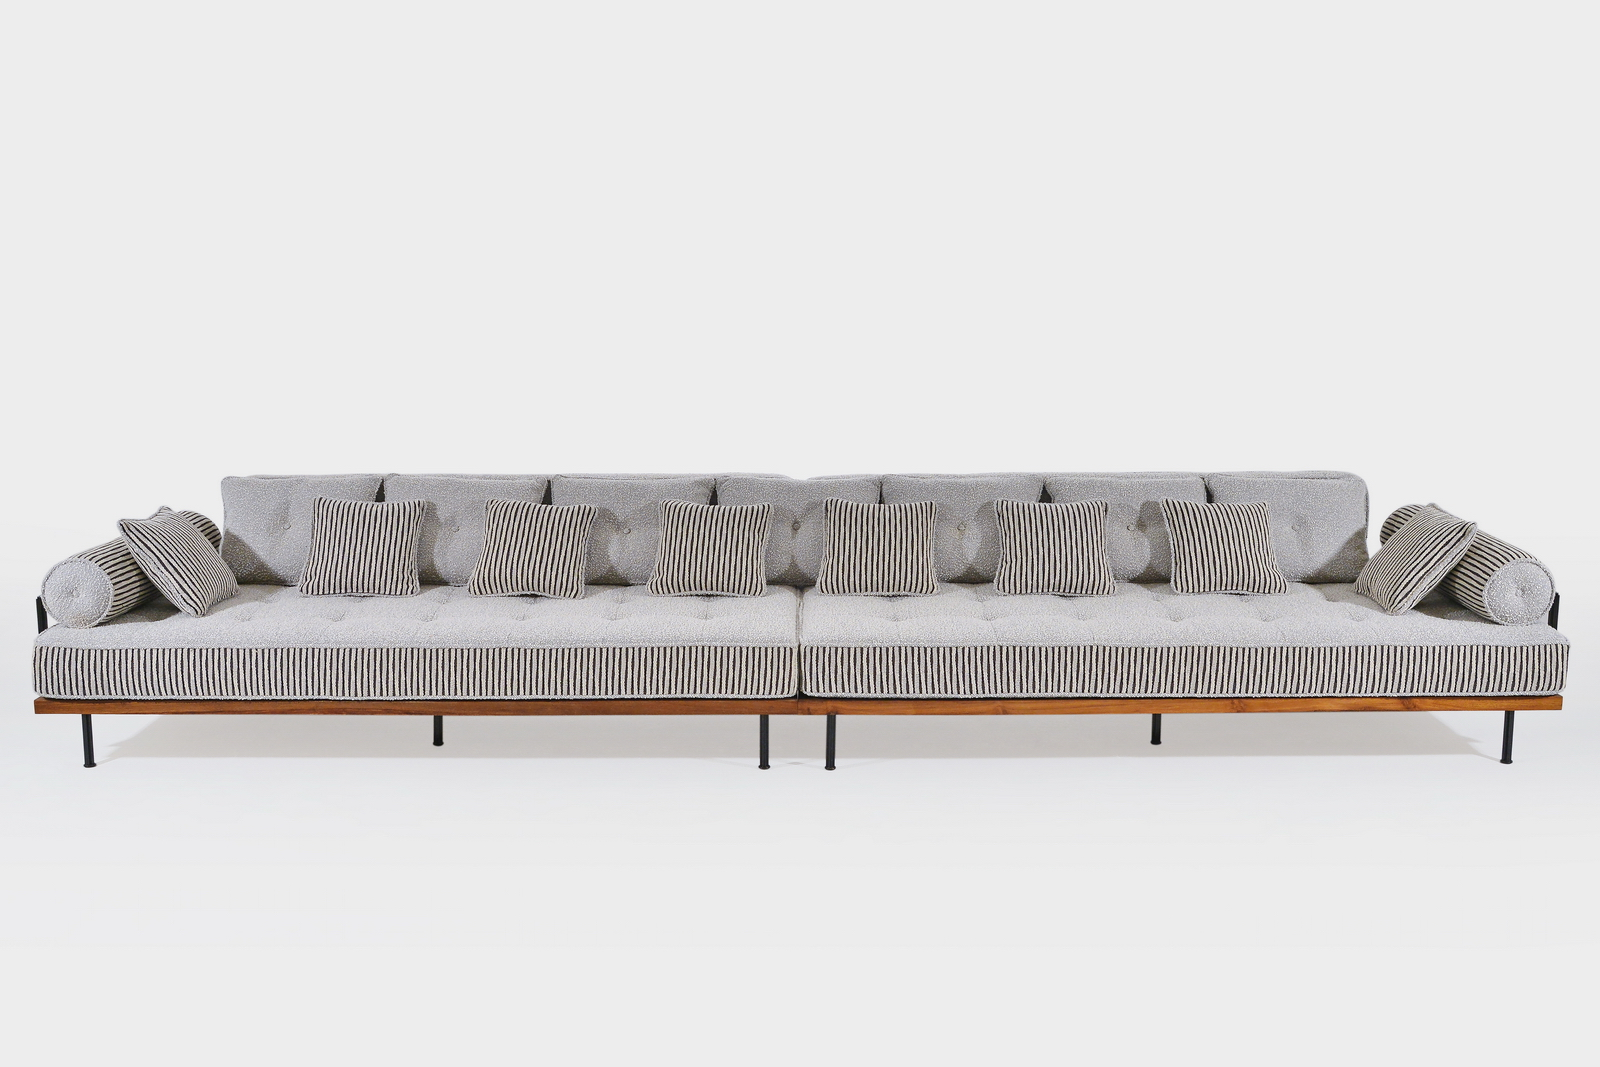 PTendercool-Sofa Custom Size-BS3-TE-DO-201209-01